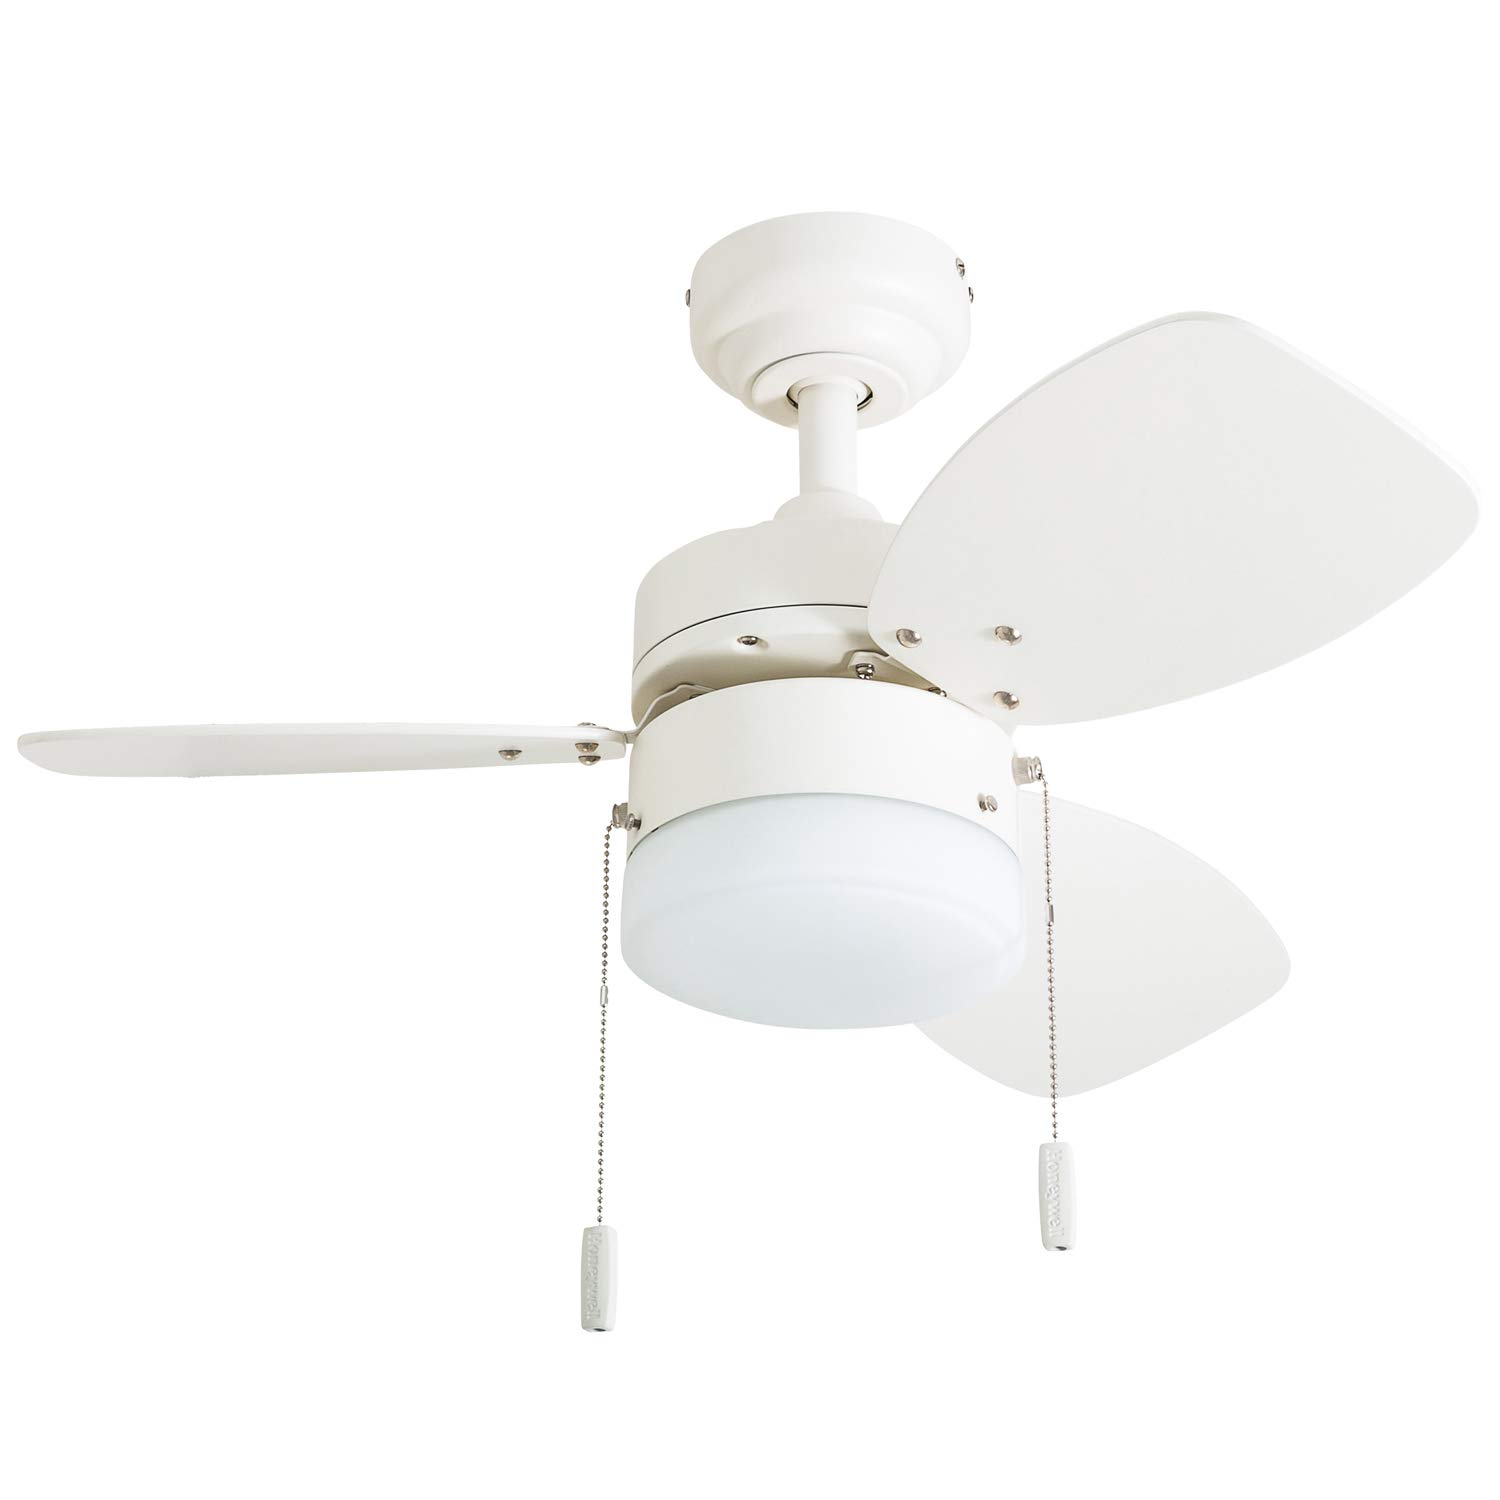 """Brushed 30/"""" LED Frosted Honeywell Ceiling Fans 50601-01 Ocean Breeze Contemporary Light Oak//Satin Nickel Finish Blades"""